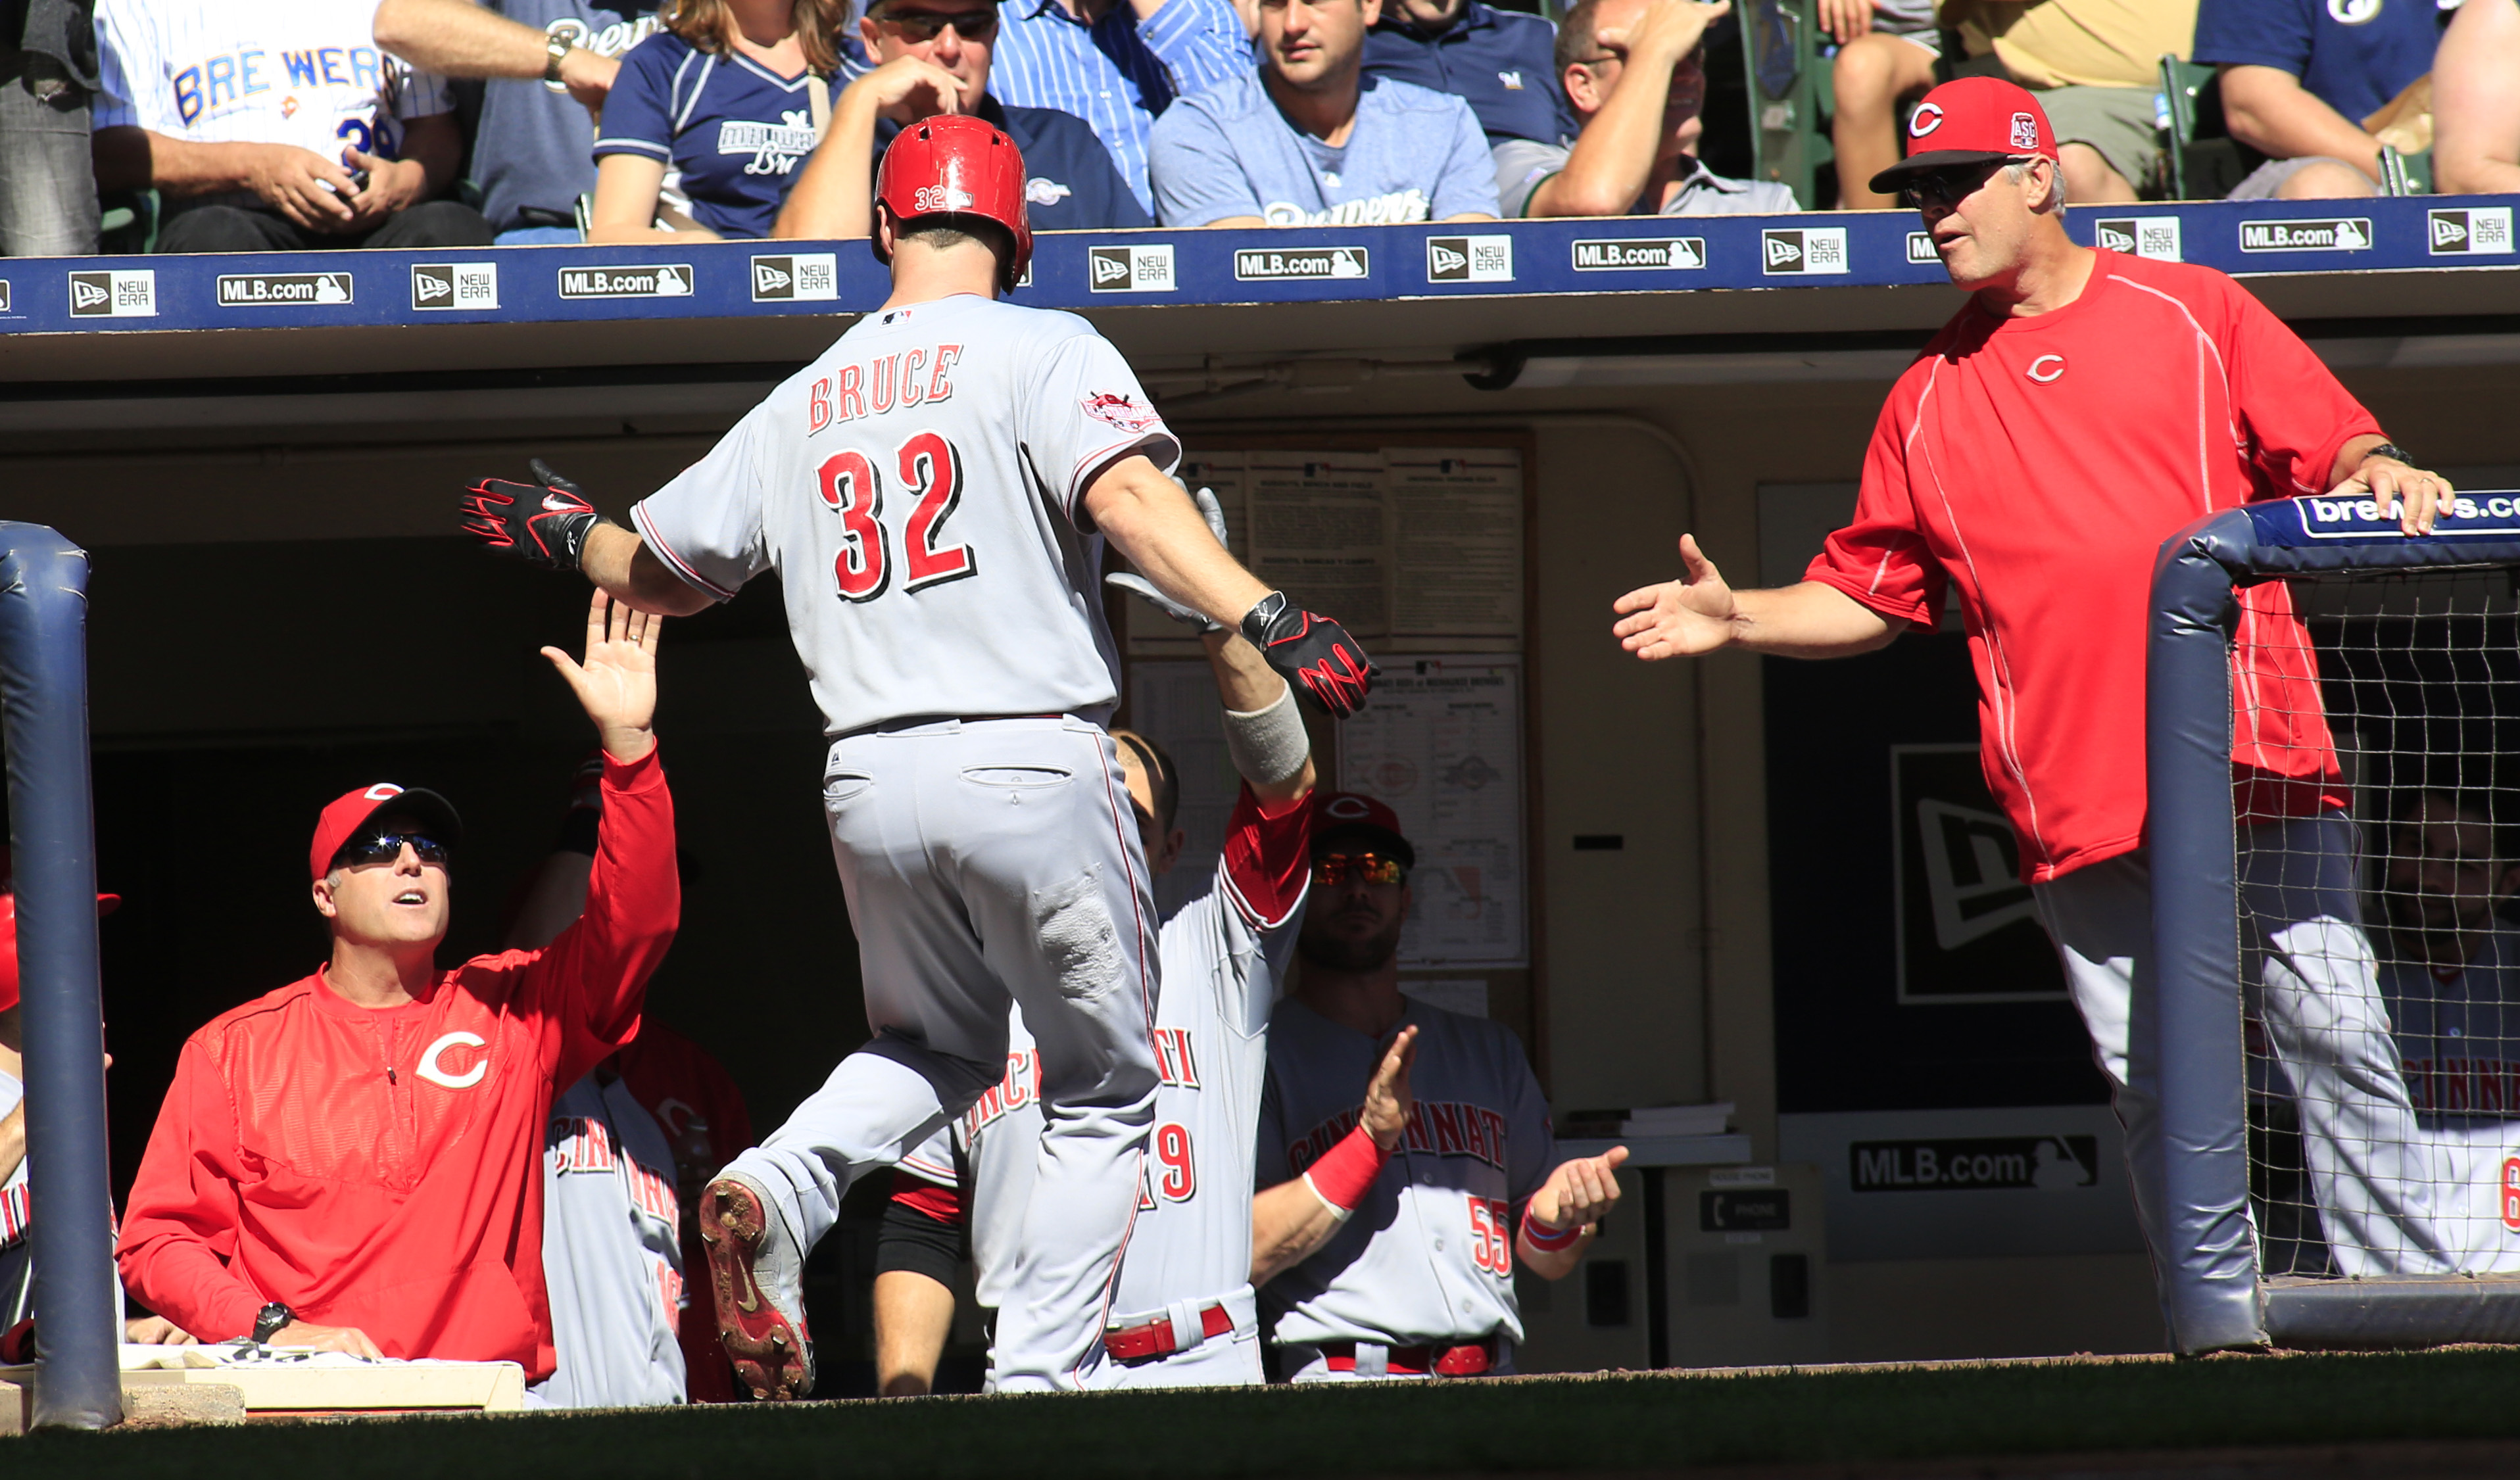 Cincinnati Reds' Jay Bruce is congratulated by teammates after hitting a solo home run against the Milwaukee Brewers during the second inning of a baseball game Sunday, Sept. 20, 2015, in Milwaukee. (AP Photo/Darren Hauck)